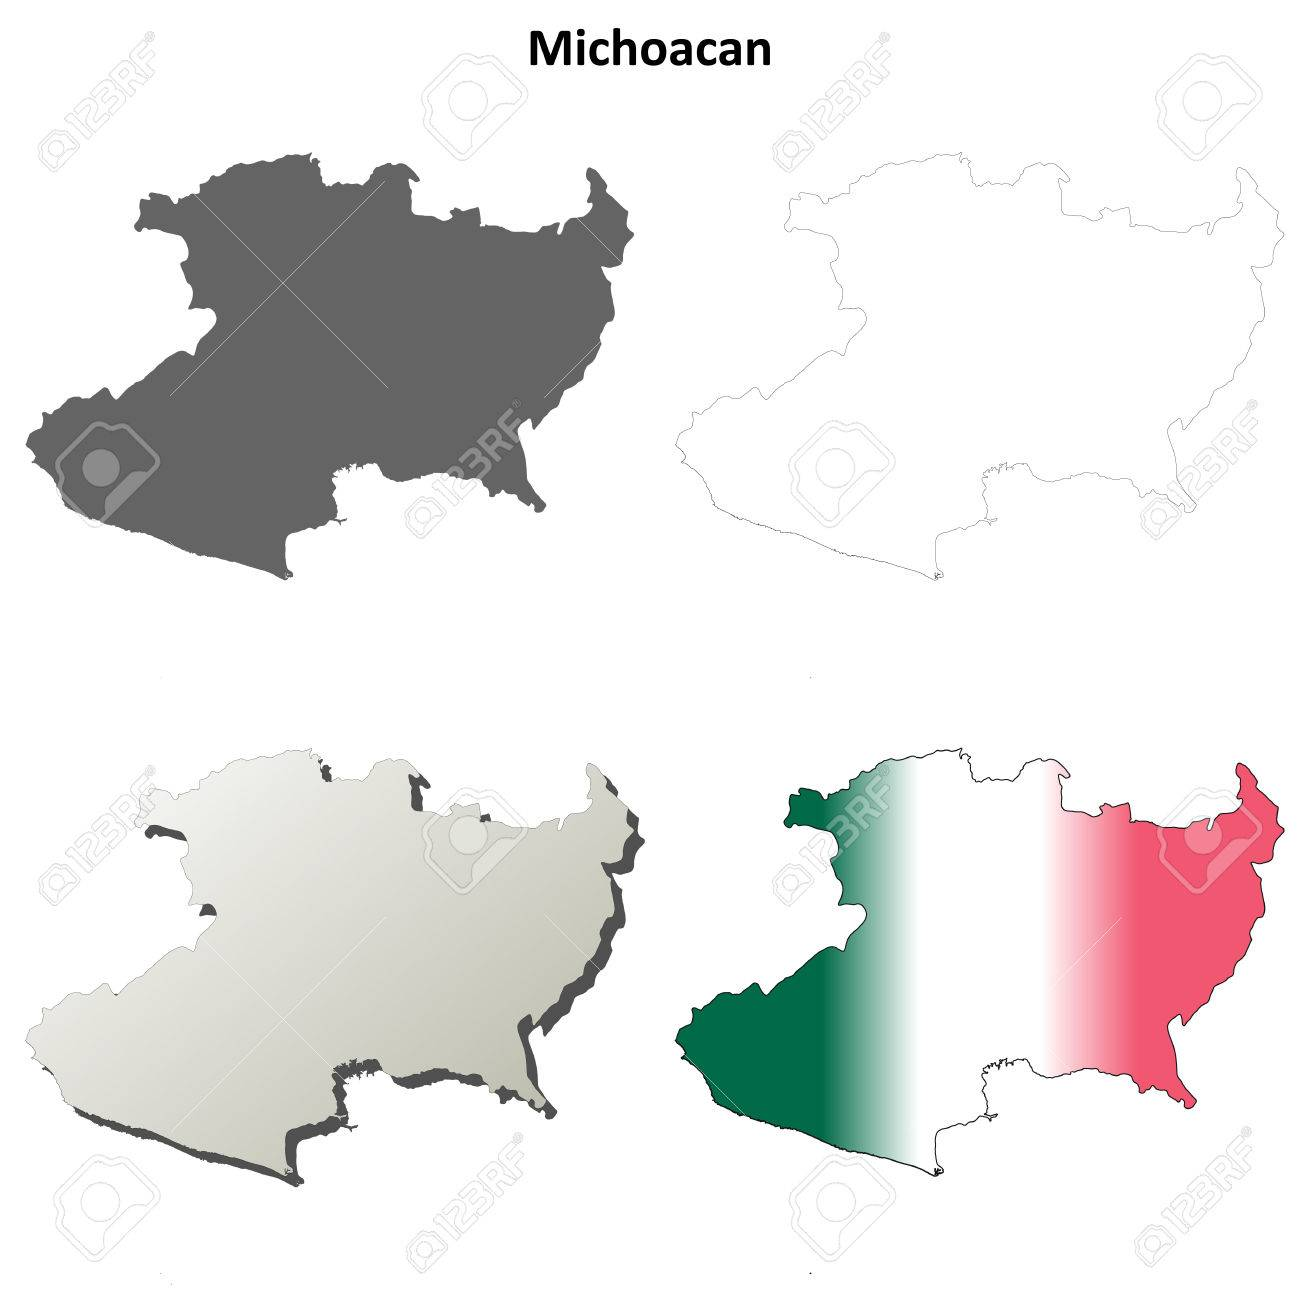 Michoacan State Map.Michoacan State Blank Vector Outline Map Set Royalty Free Cliparts